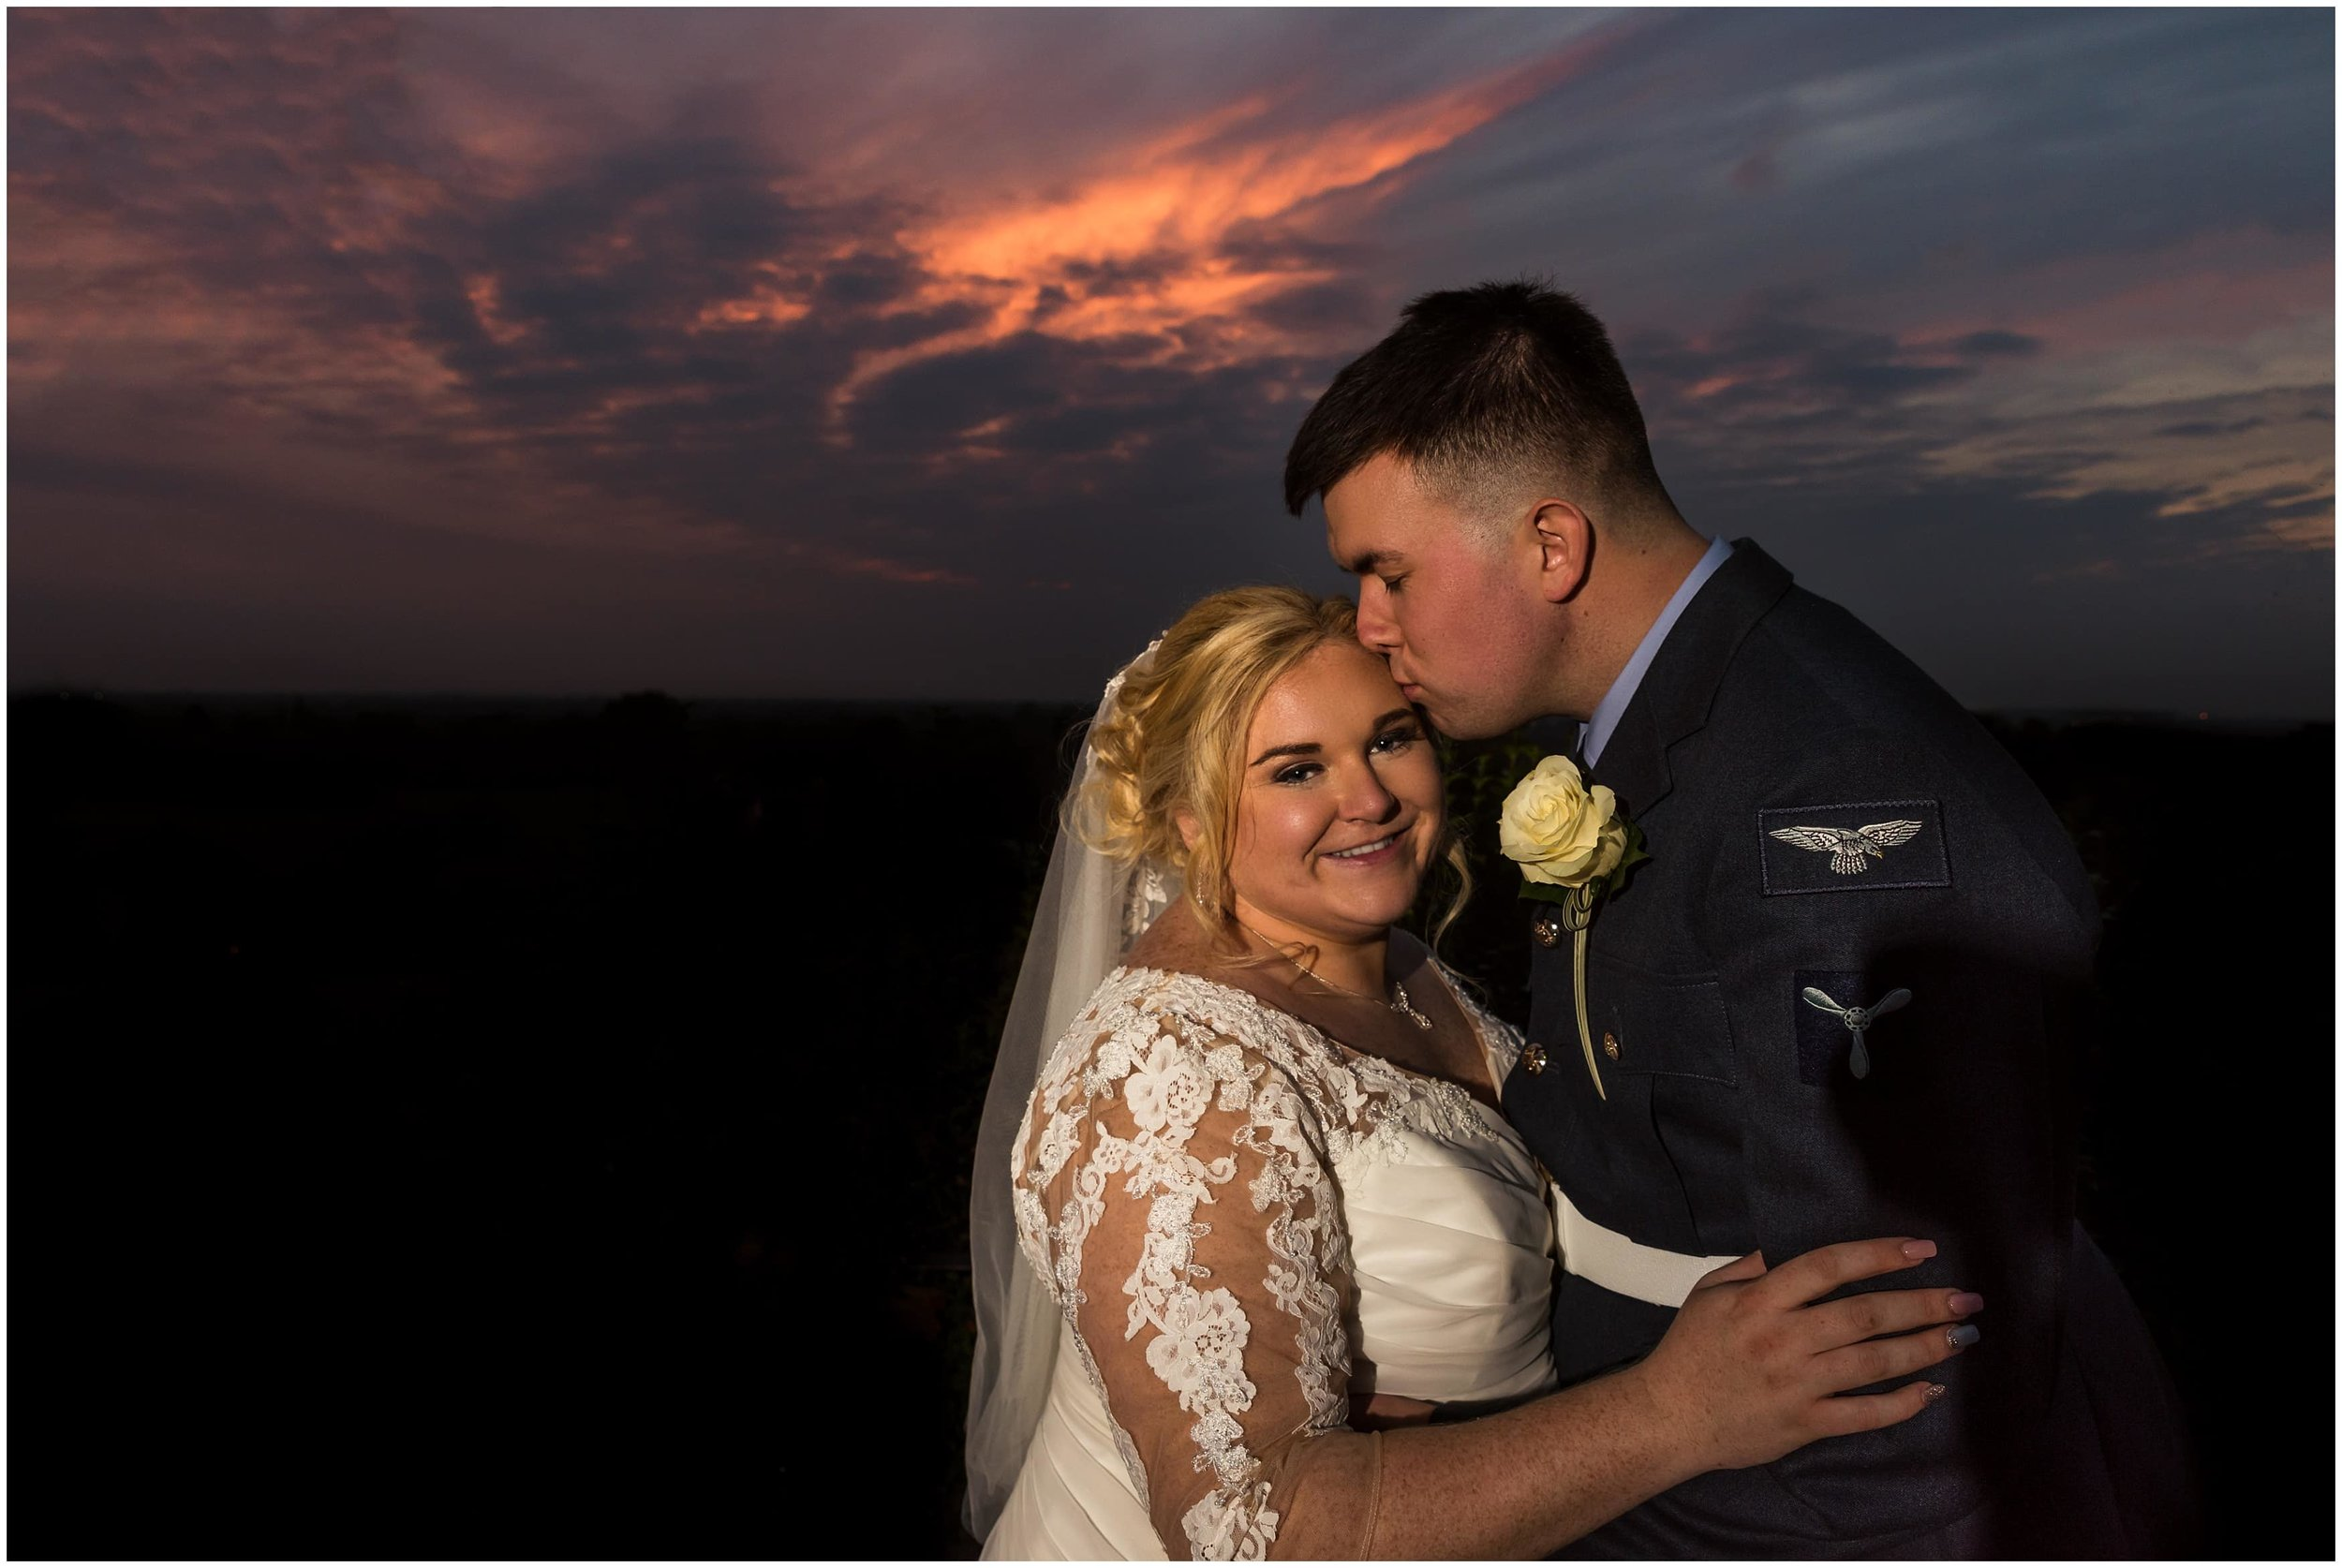 Sunset photo taken of bride and groom at Richmond Hill Hotel captured by Alex Buckland Photography